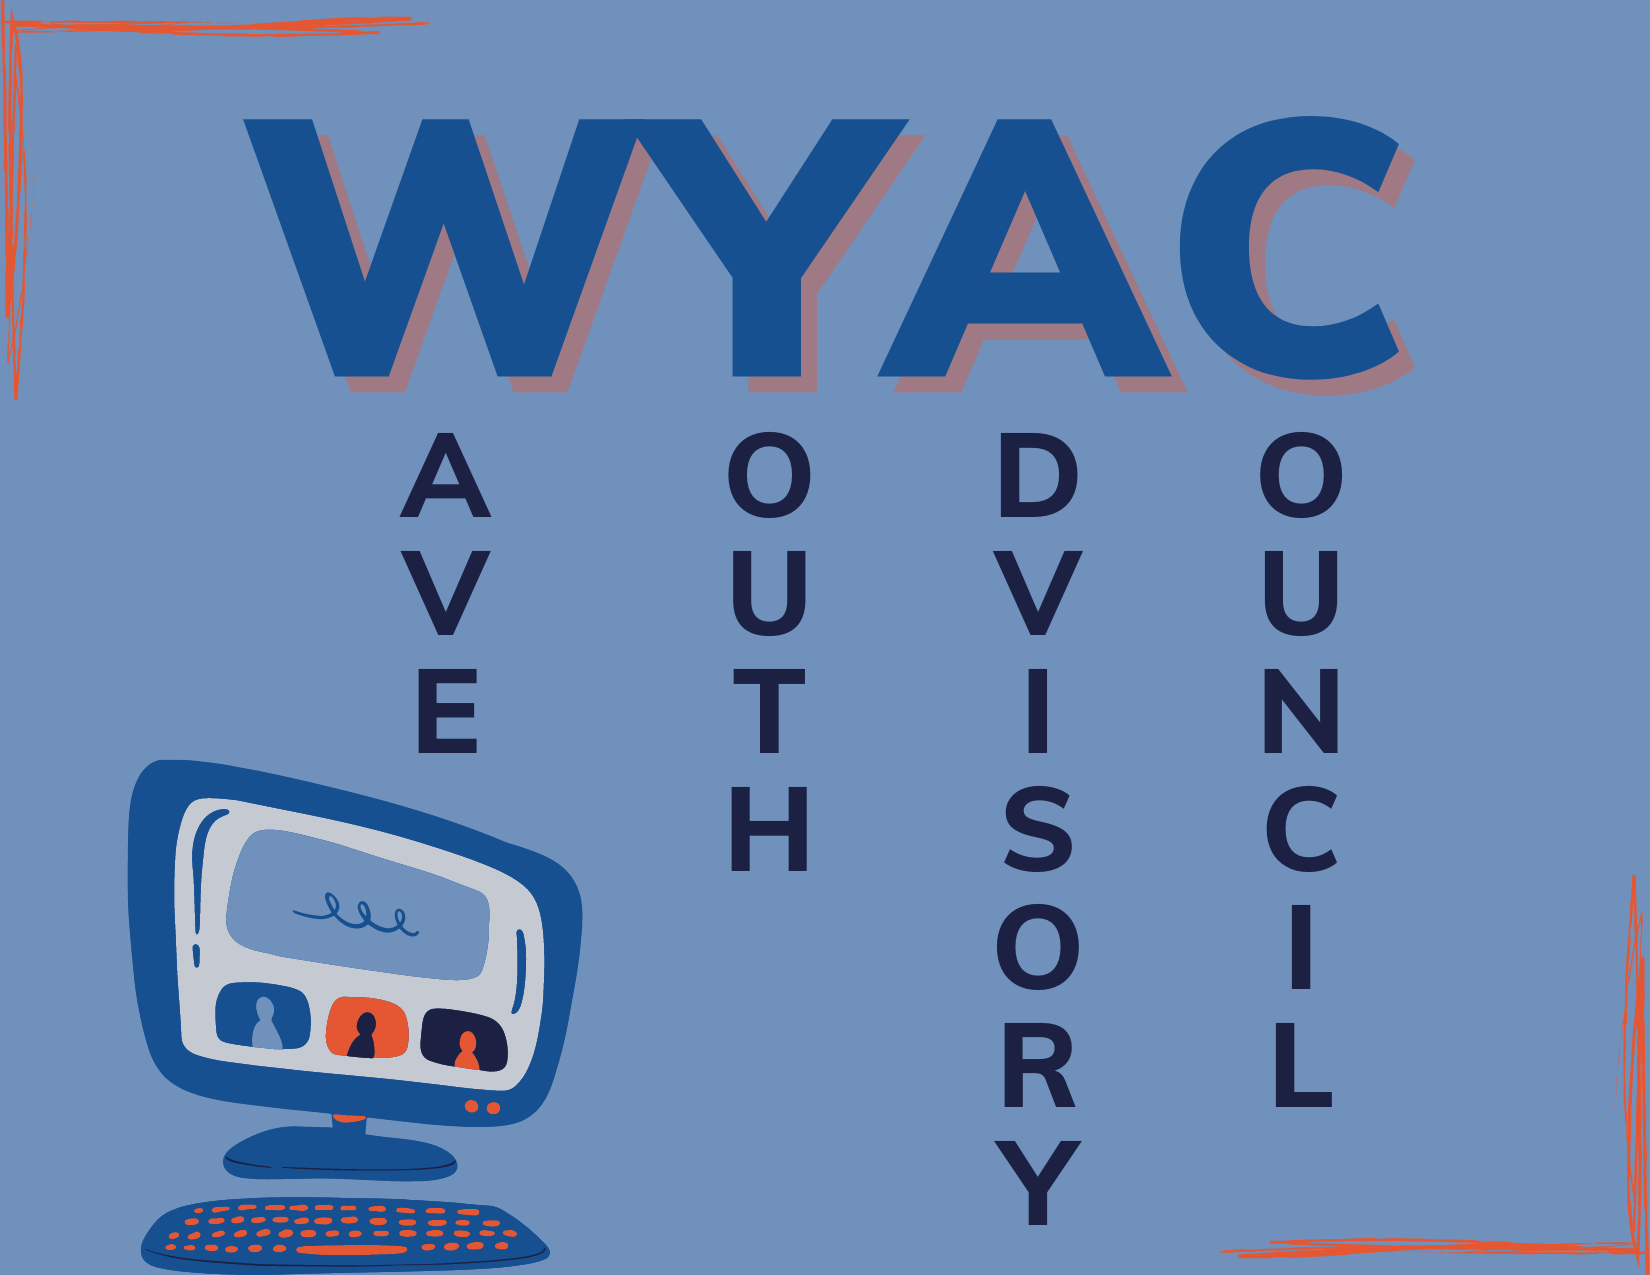 WAVE Youth Advisory Council (WYAC)